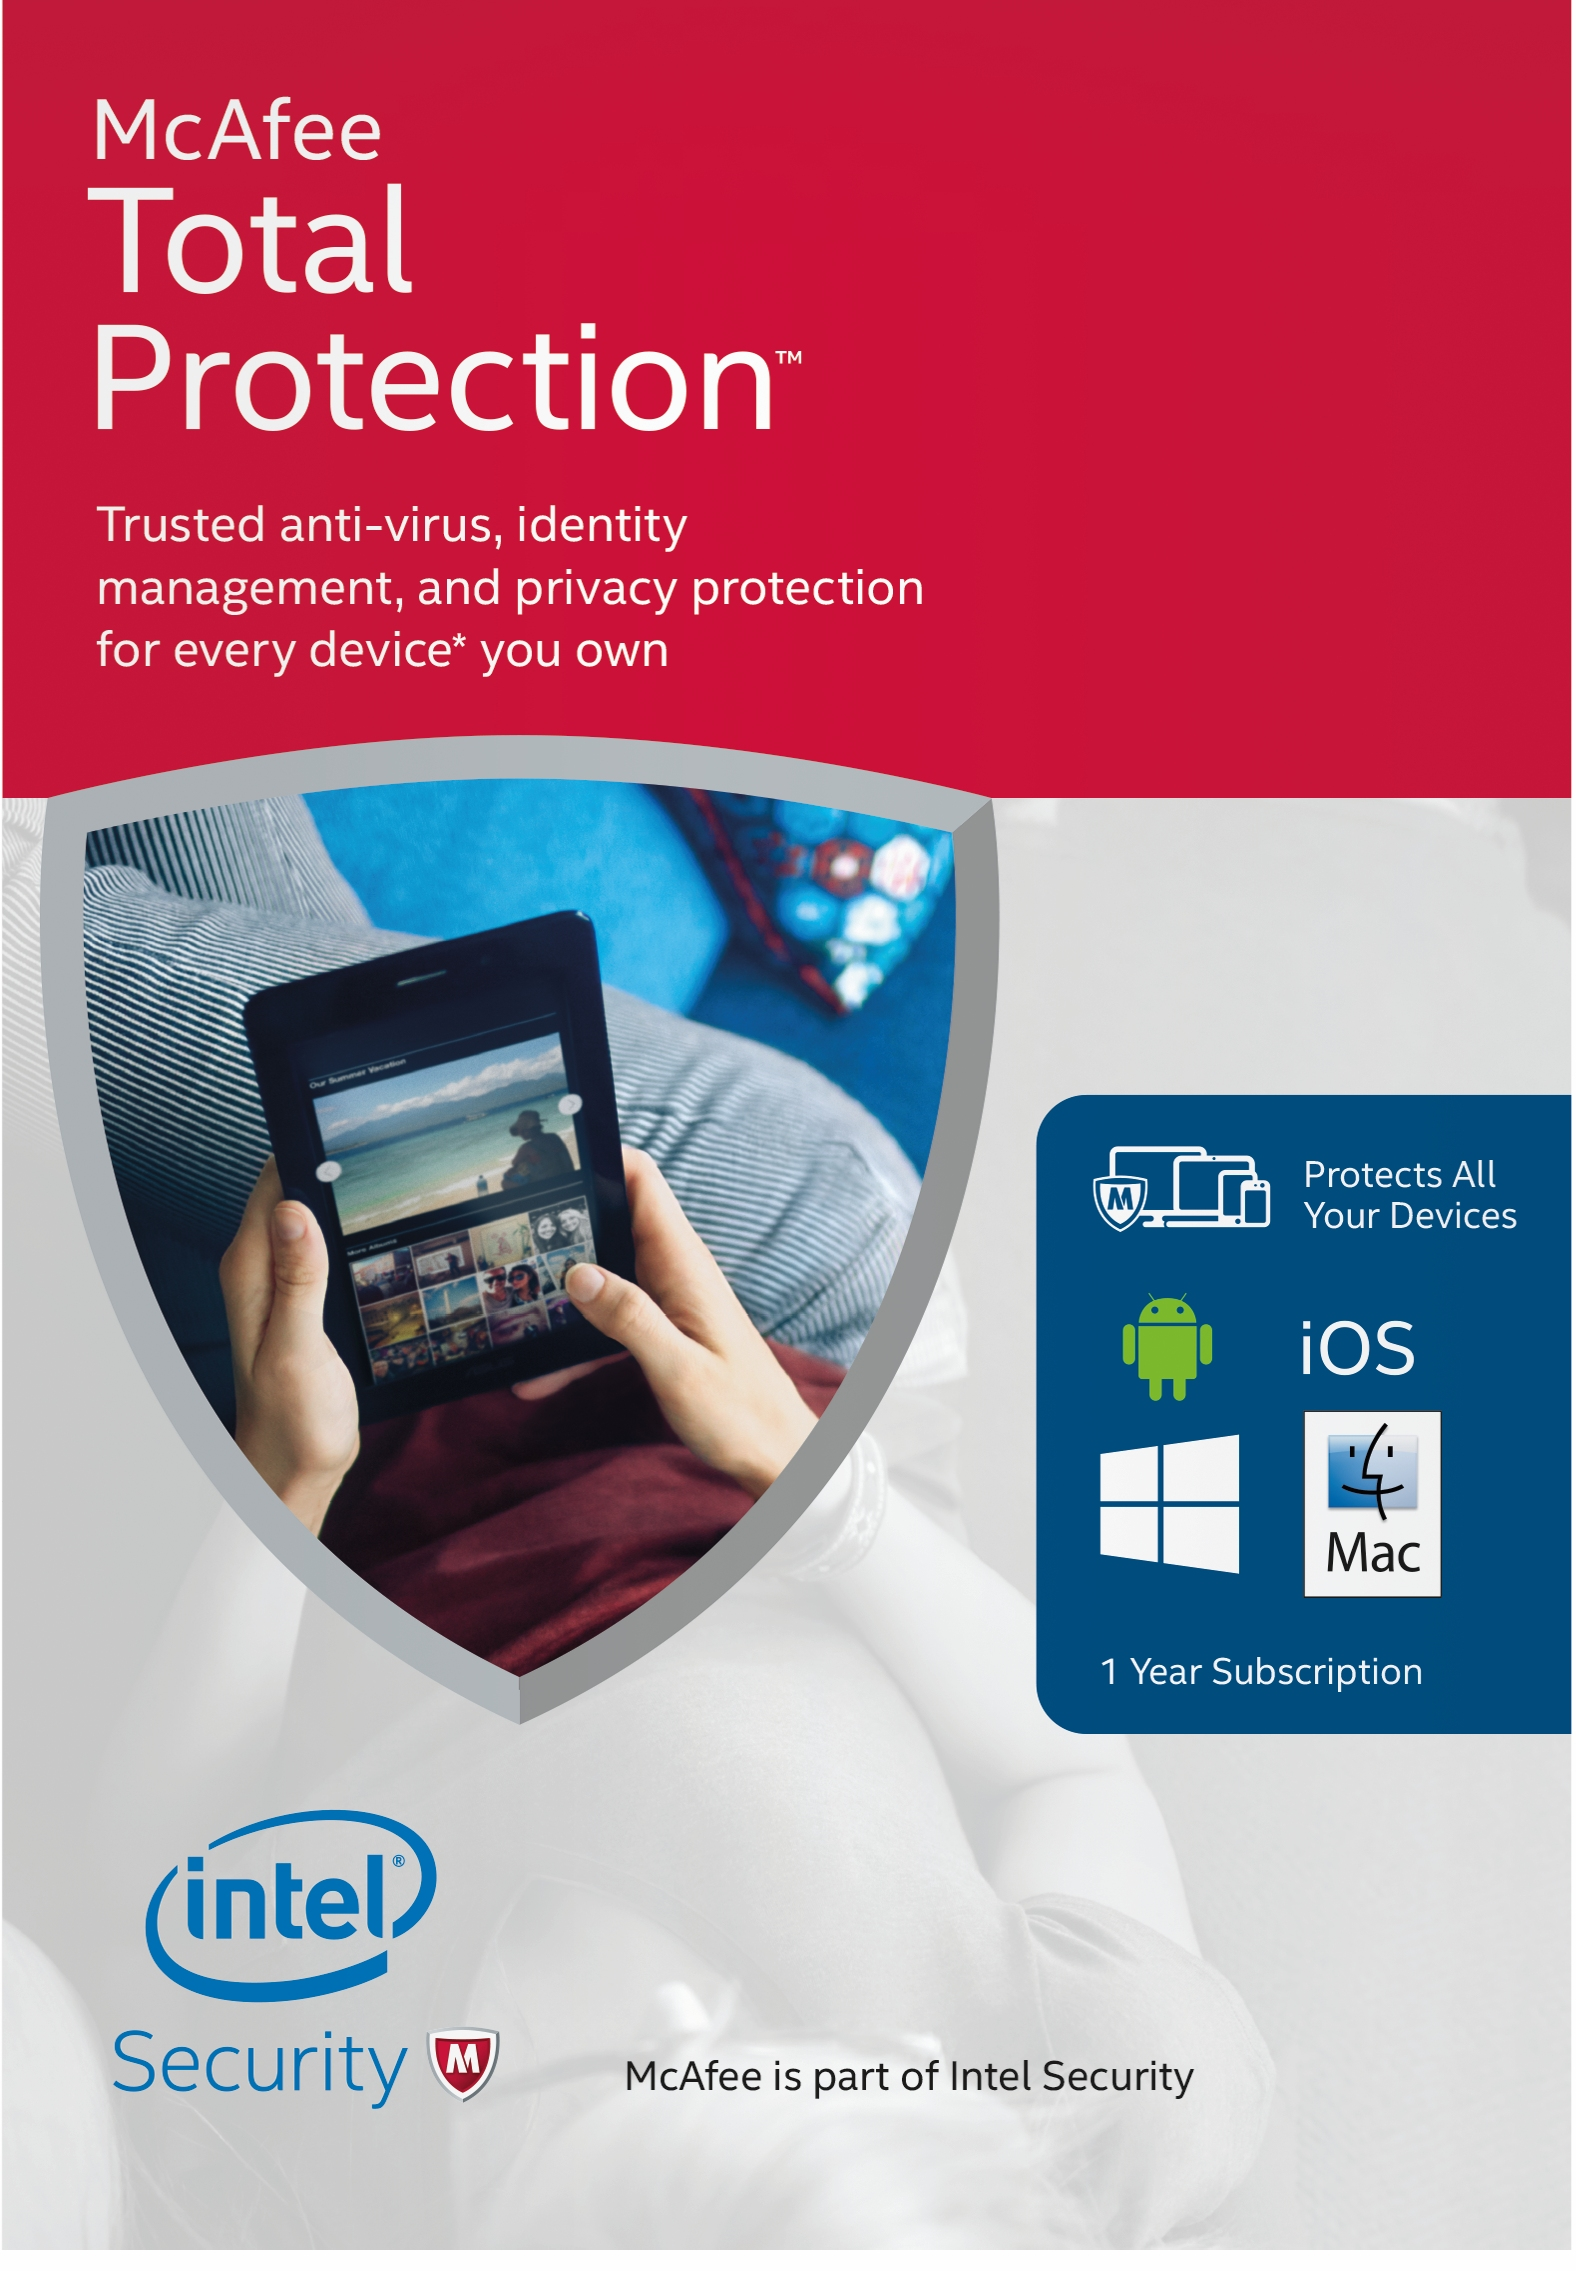 Mcafee Total Protection 2009 No CD Key Needed TheRekash2009 2019 Ver.7.3 Decoded